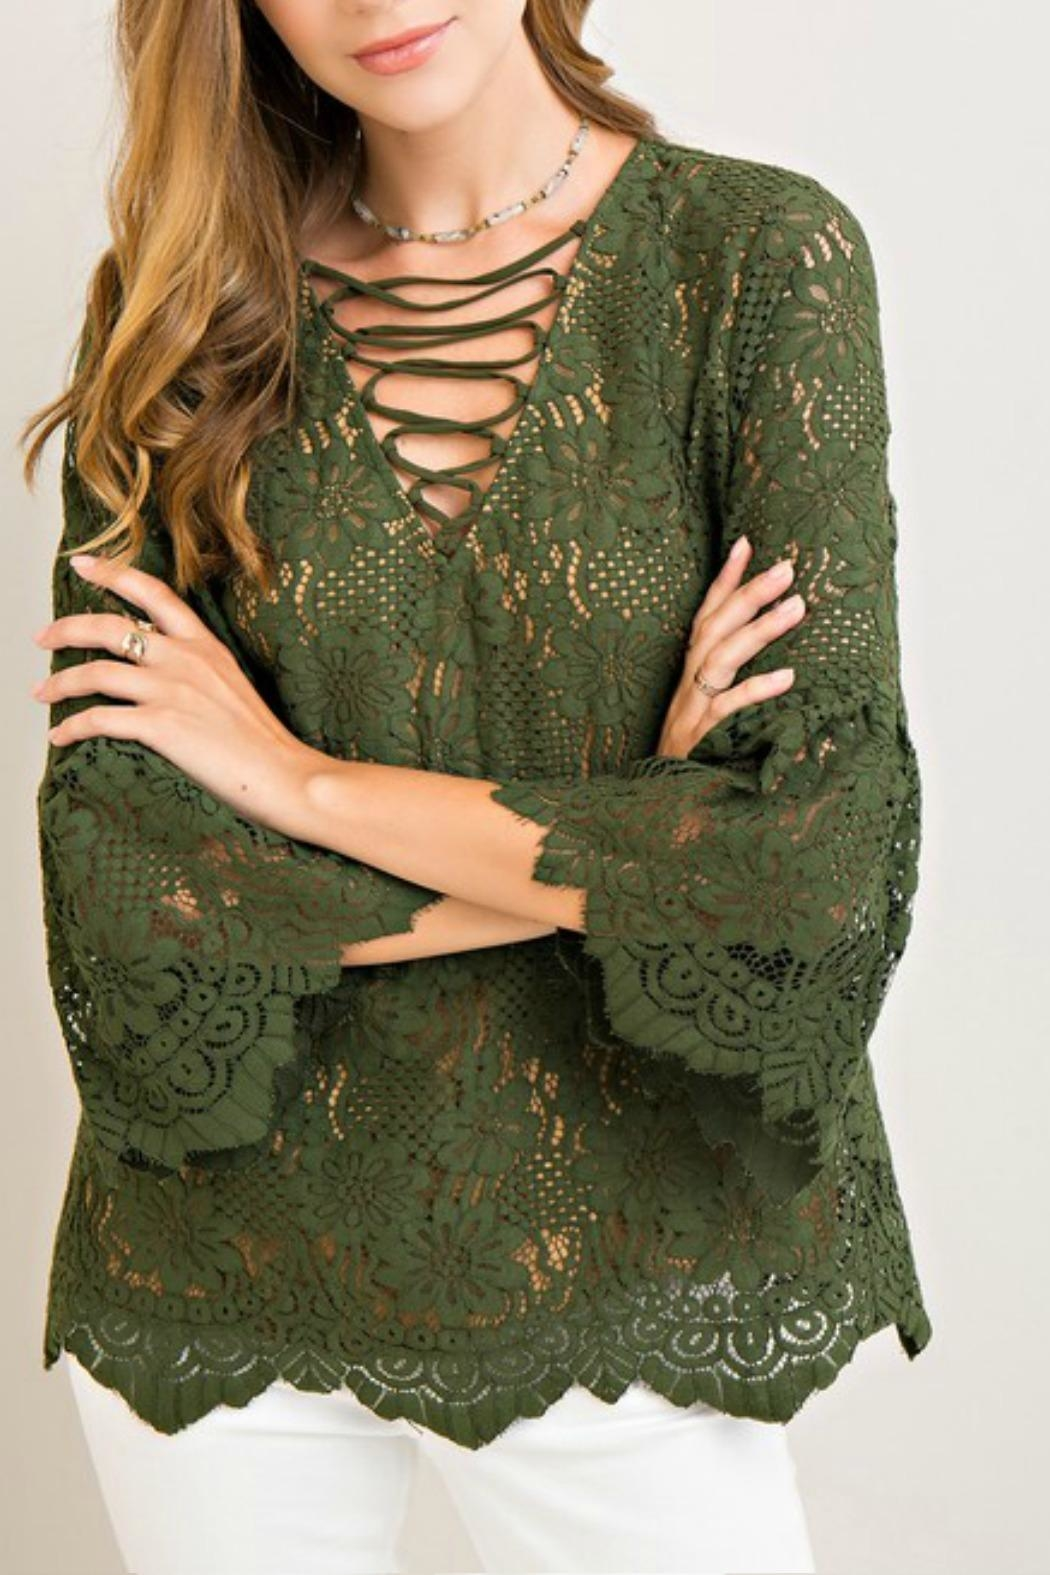 Entro Lace Green Top - Main Image